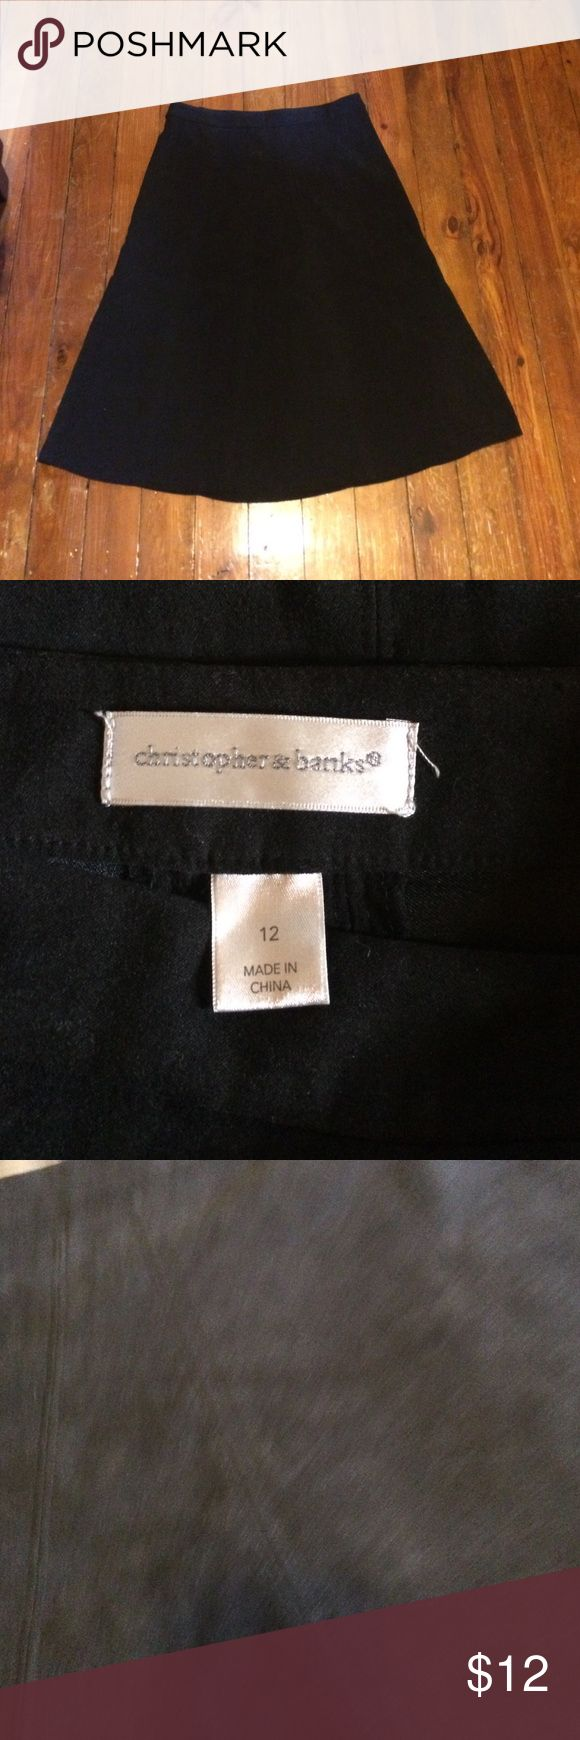 Christopher banks faux suede maxi skirt Size 12 longer black skirt. The material is very soft reminds me of velvet or suede but is neither. Very well made & lovely :) smoke free home dog mom. Skirts